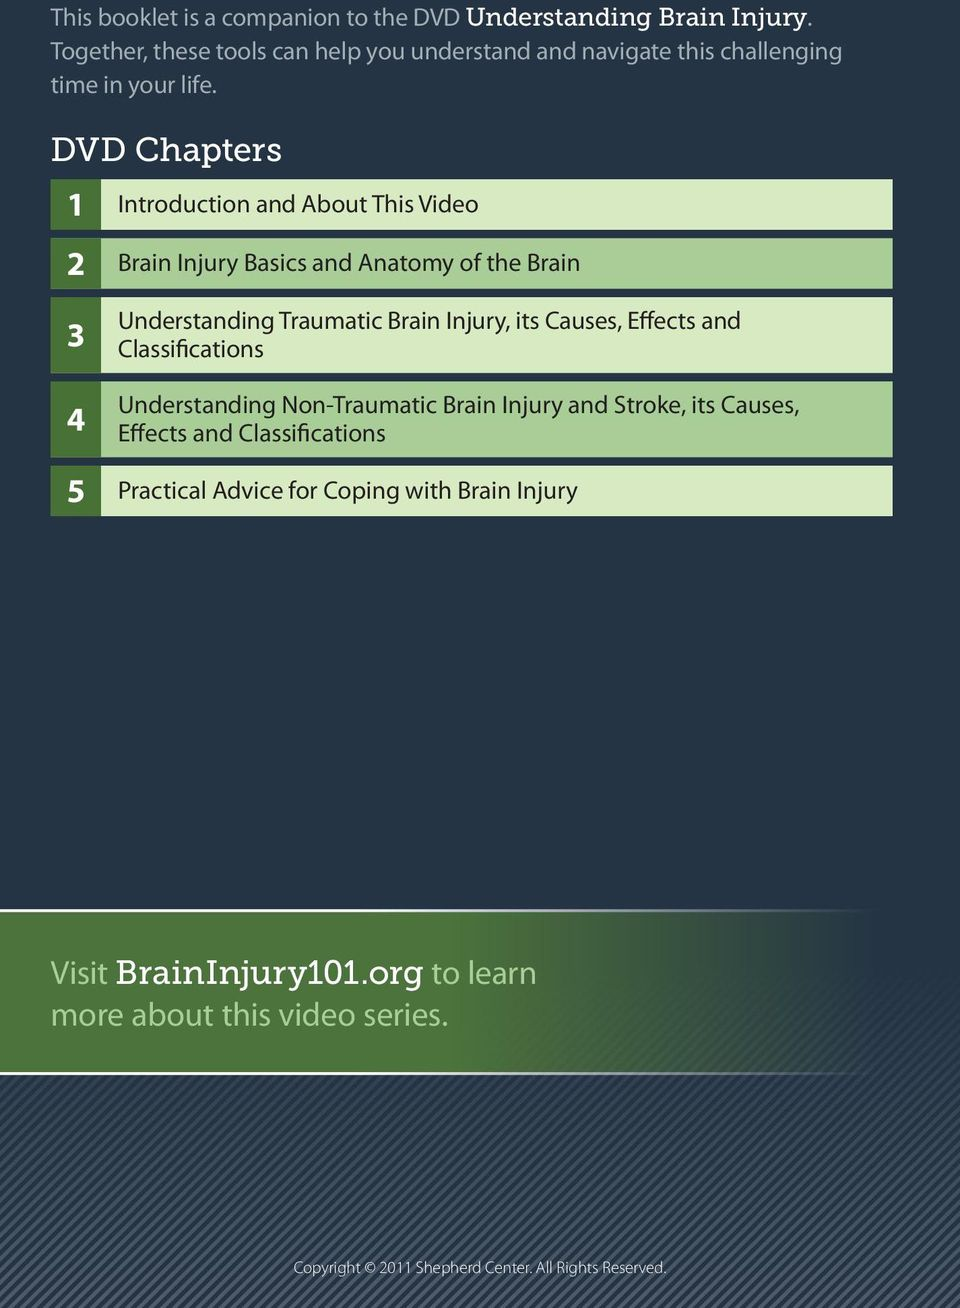 DVD Chapters 1 2 Introduction and About This Video Brain Injury Basics and Anatomy of the Brain 3 4 5 Understanding Traumatic Brain Injury, its